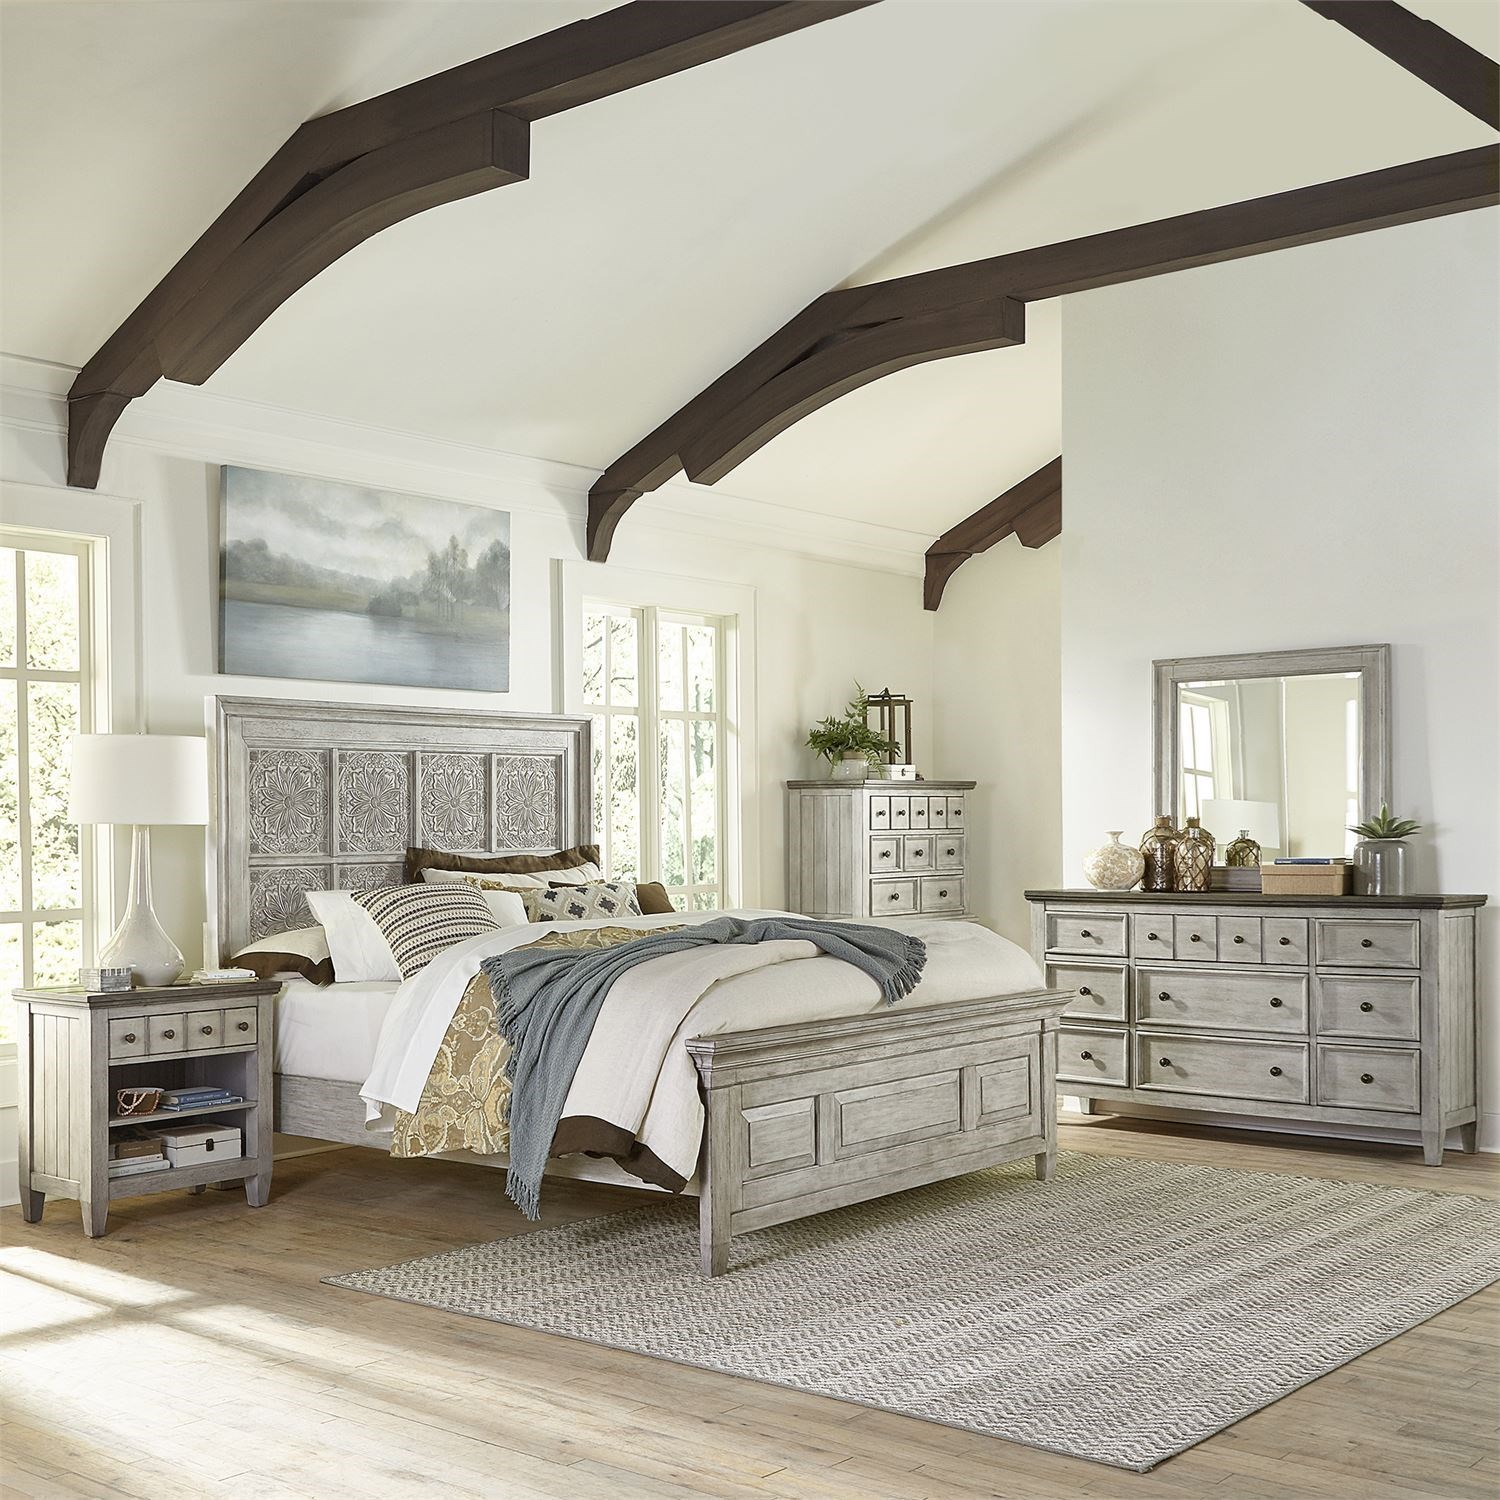 Heartland Queen Bedroom Group by Liberty Furniture at Northeast Factory Direct